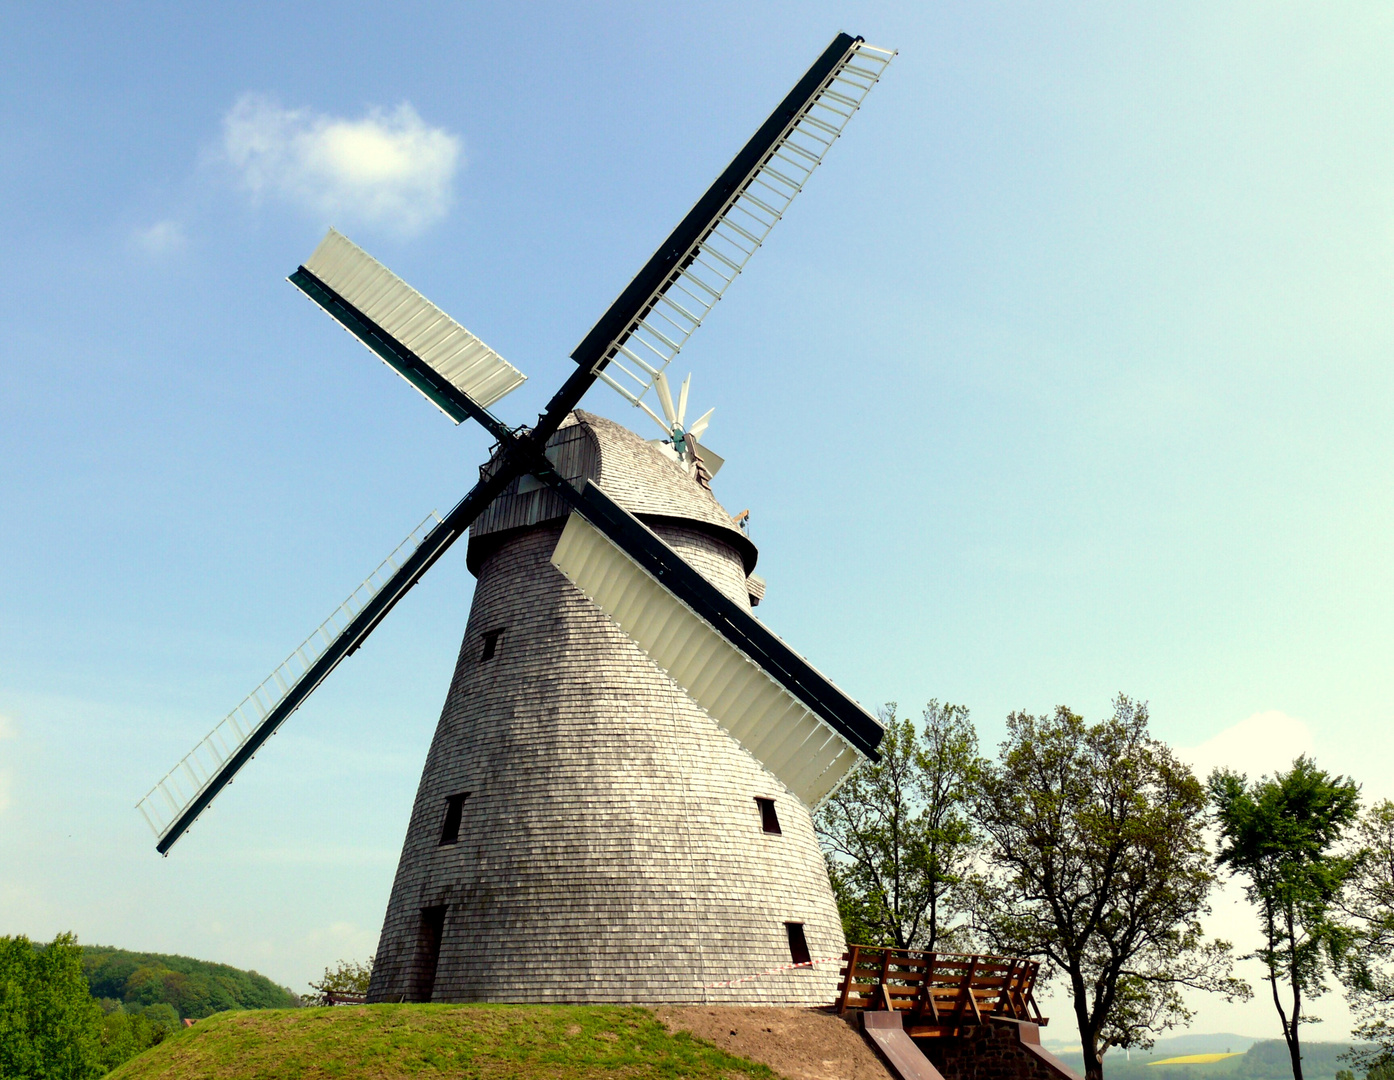 Windmühle in Exter